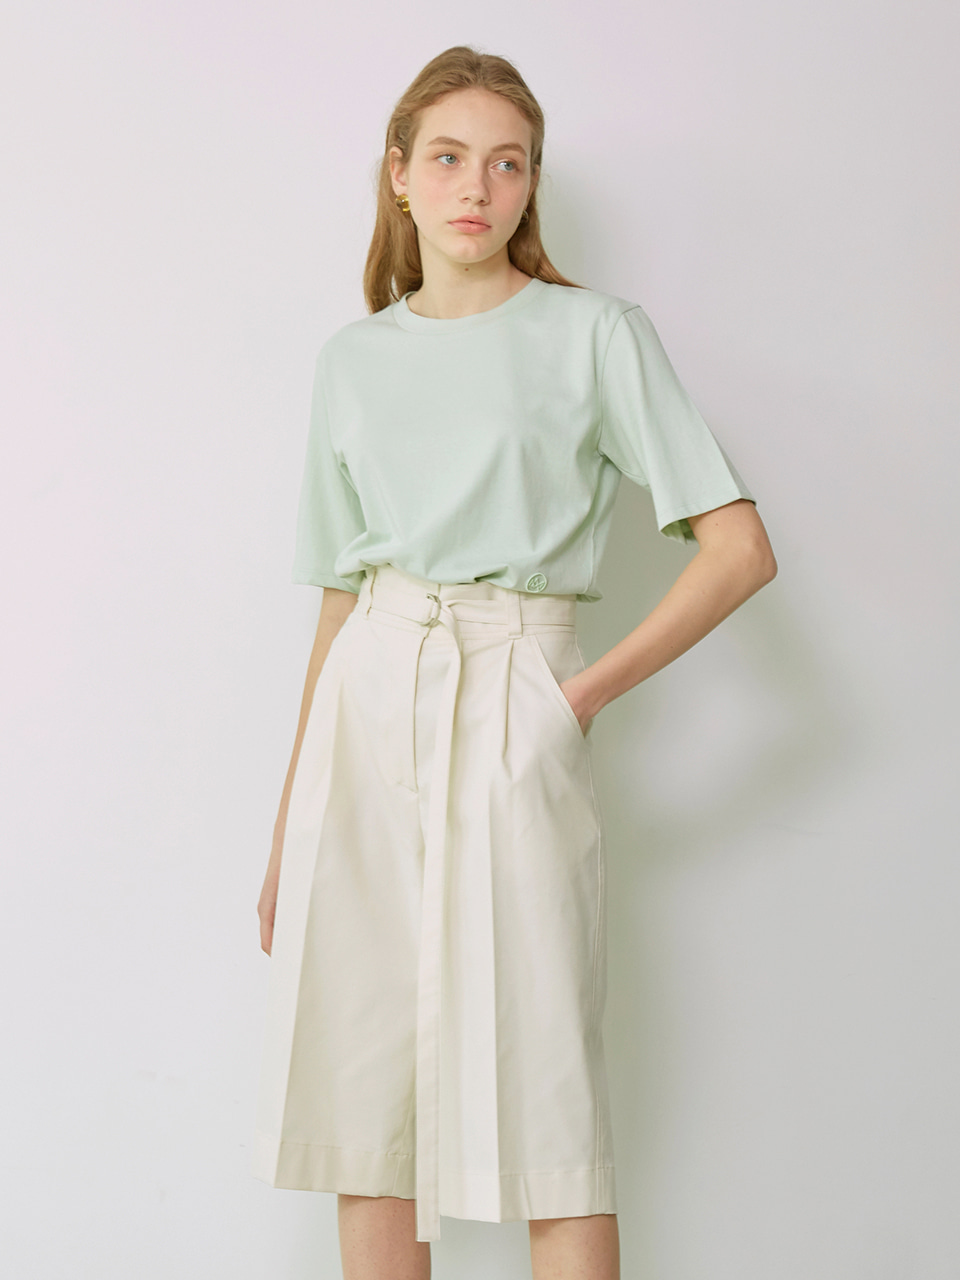 JUDE_Cotton T-Shirt_Mint